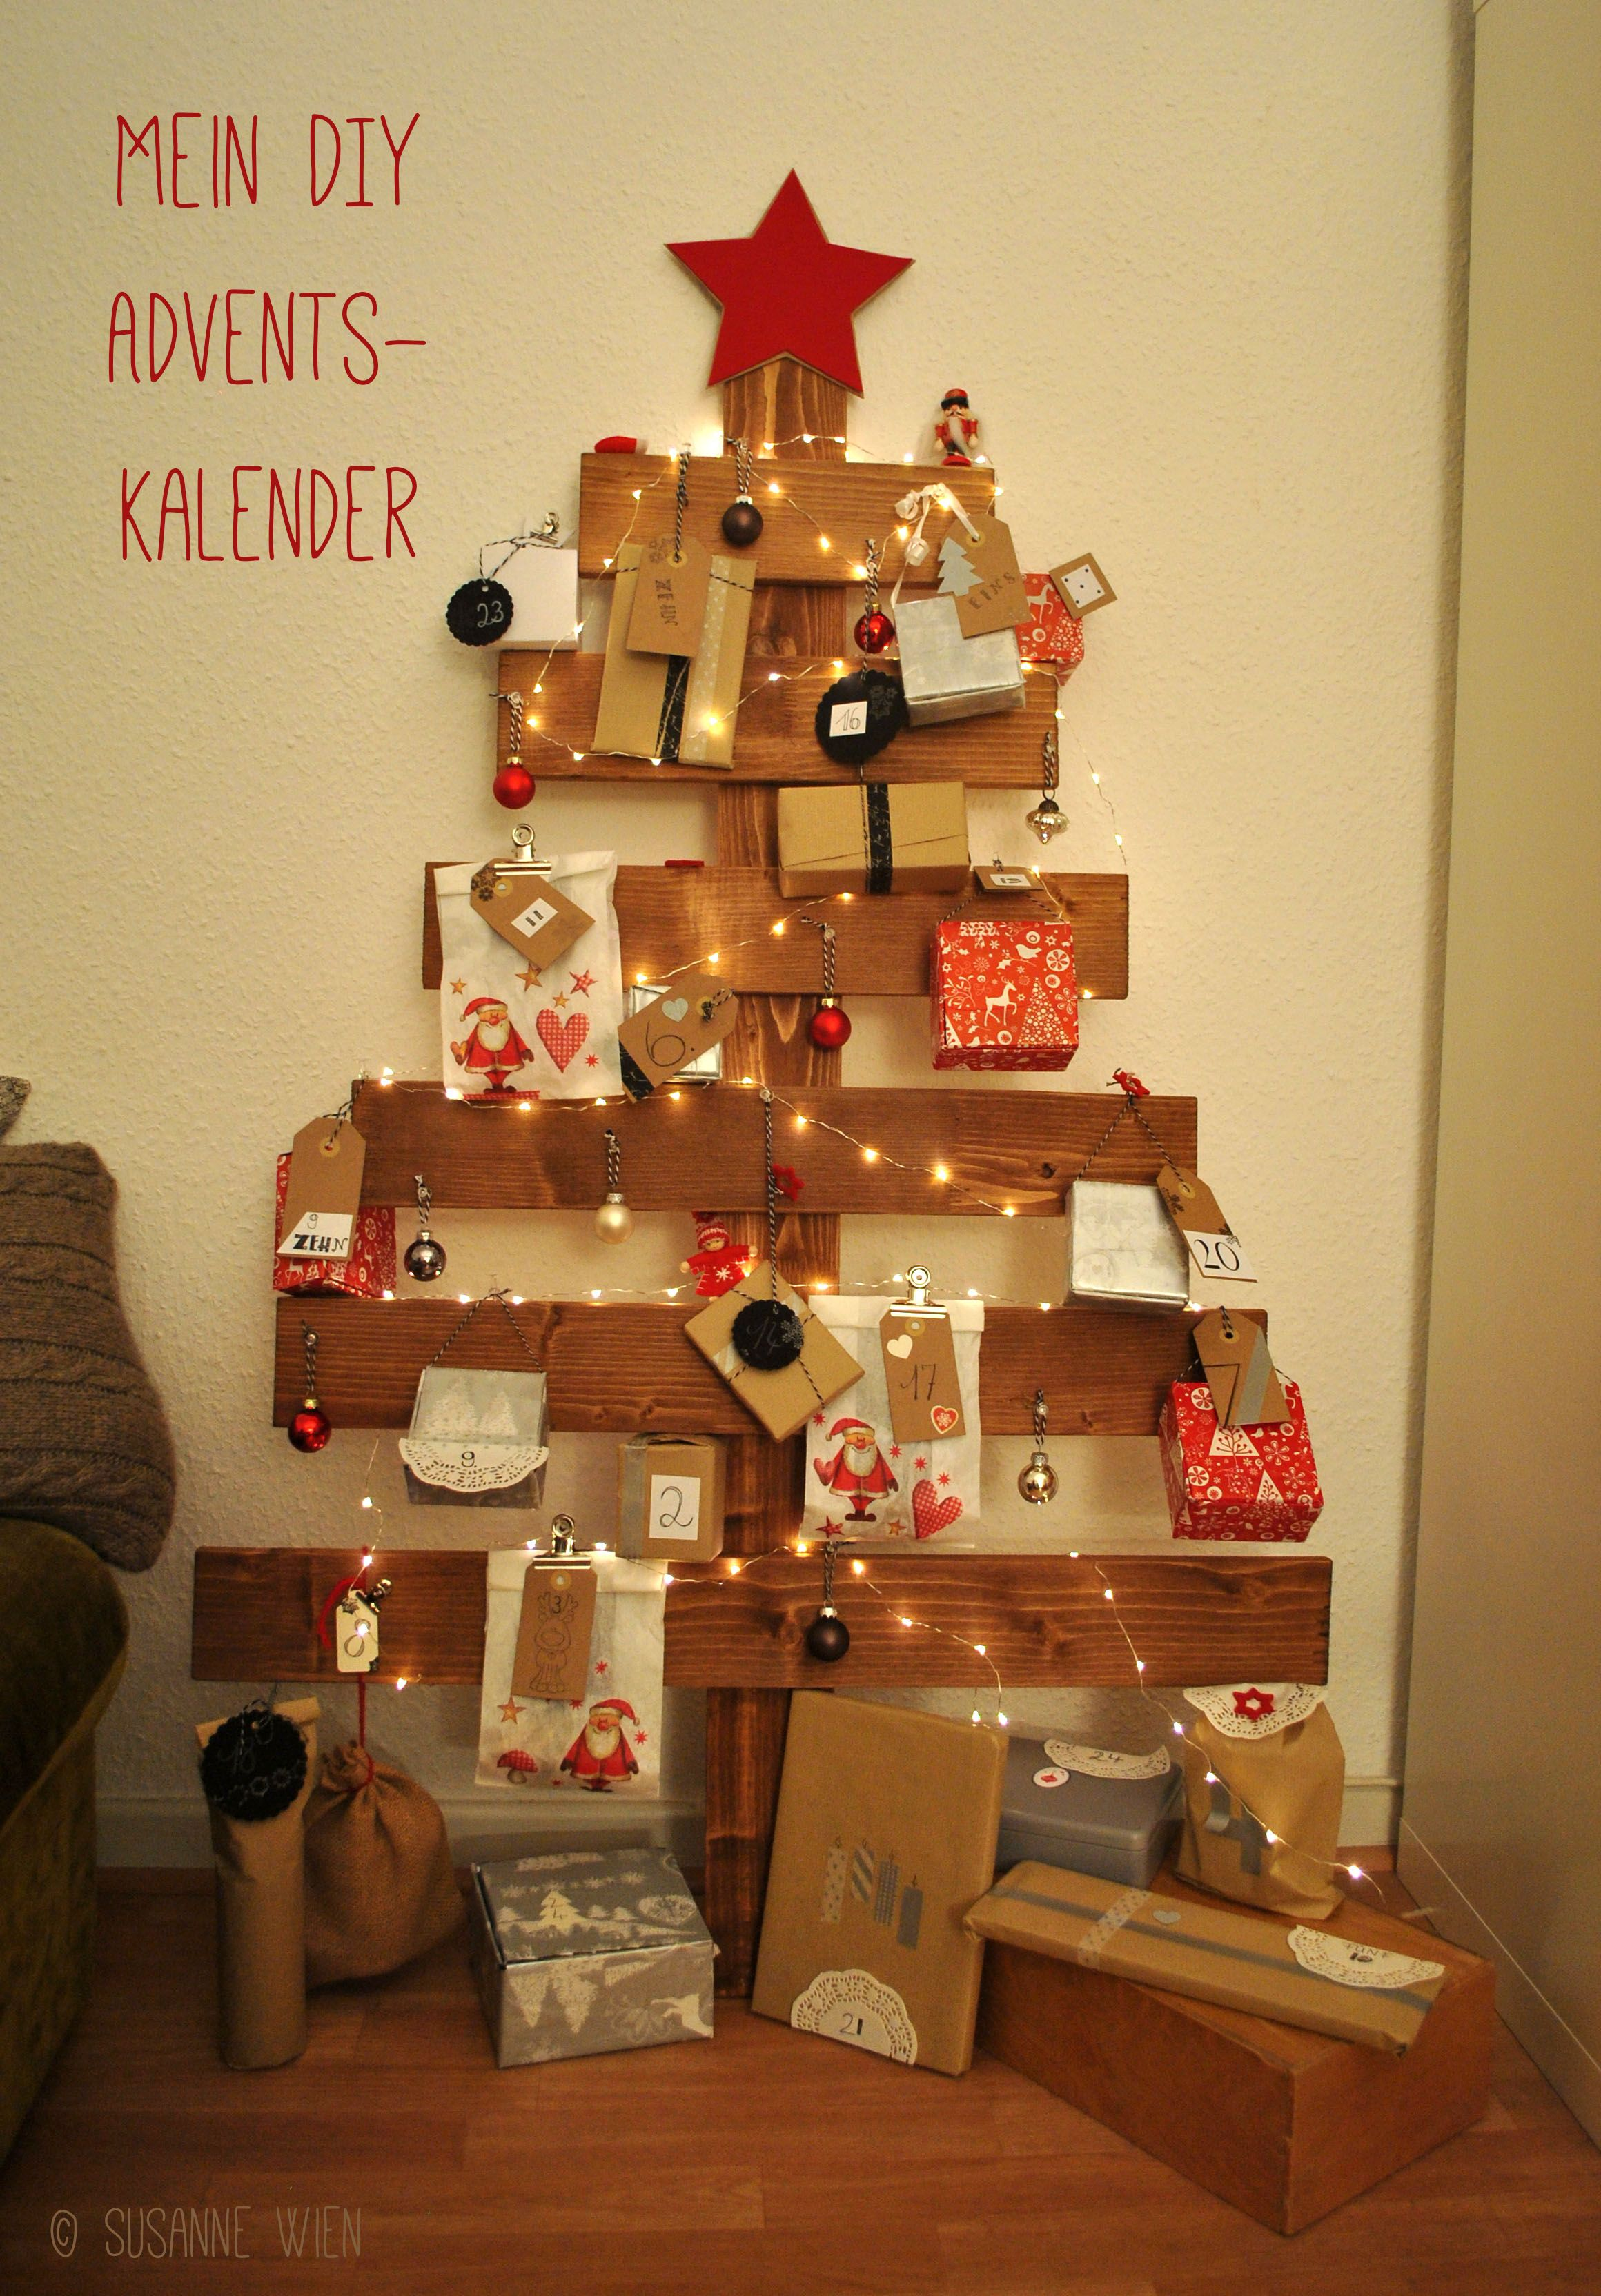 mein diy adventskalender aus einem alten lattenrost christmas upcycling ideen rund ums. Black Bedroom Furniture Sets. Home Design Ideas